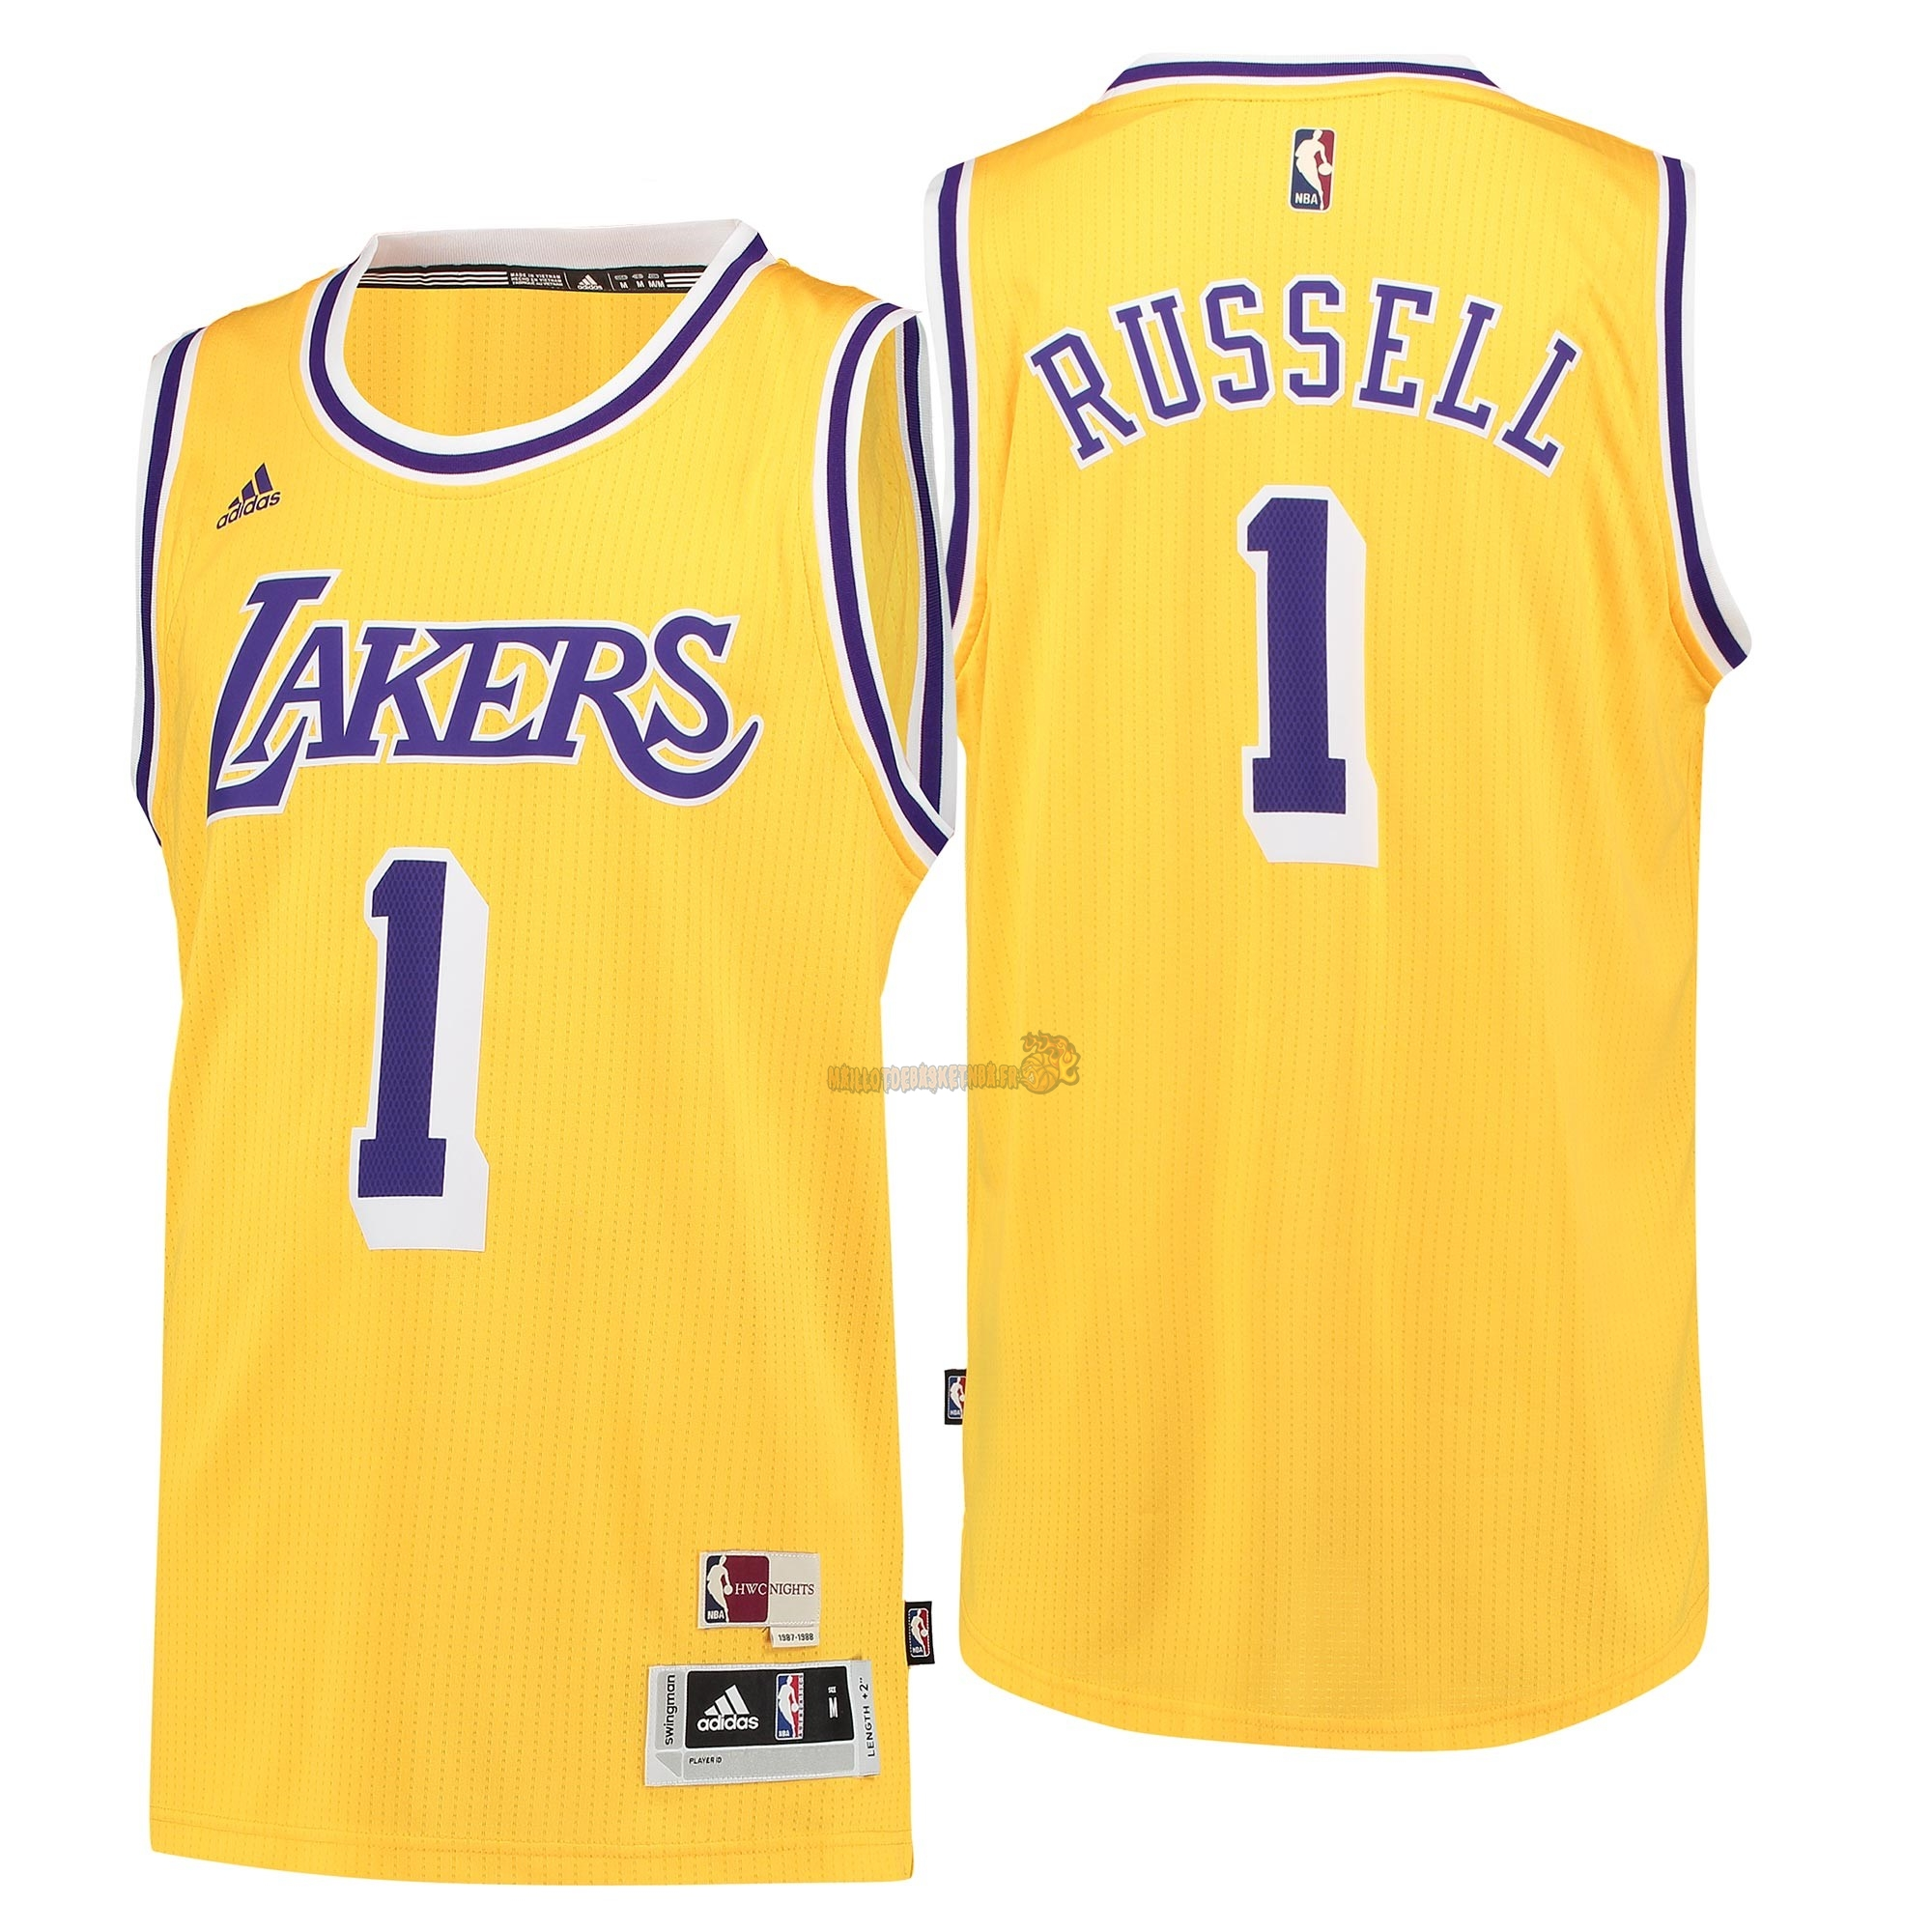 Vente Nouveau Maillot NBA Los Angeles Lakers NO.1 D'Angelo Russell Retro Bleu pas cher